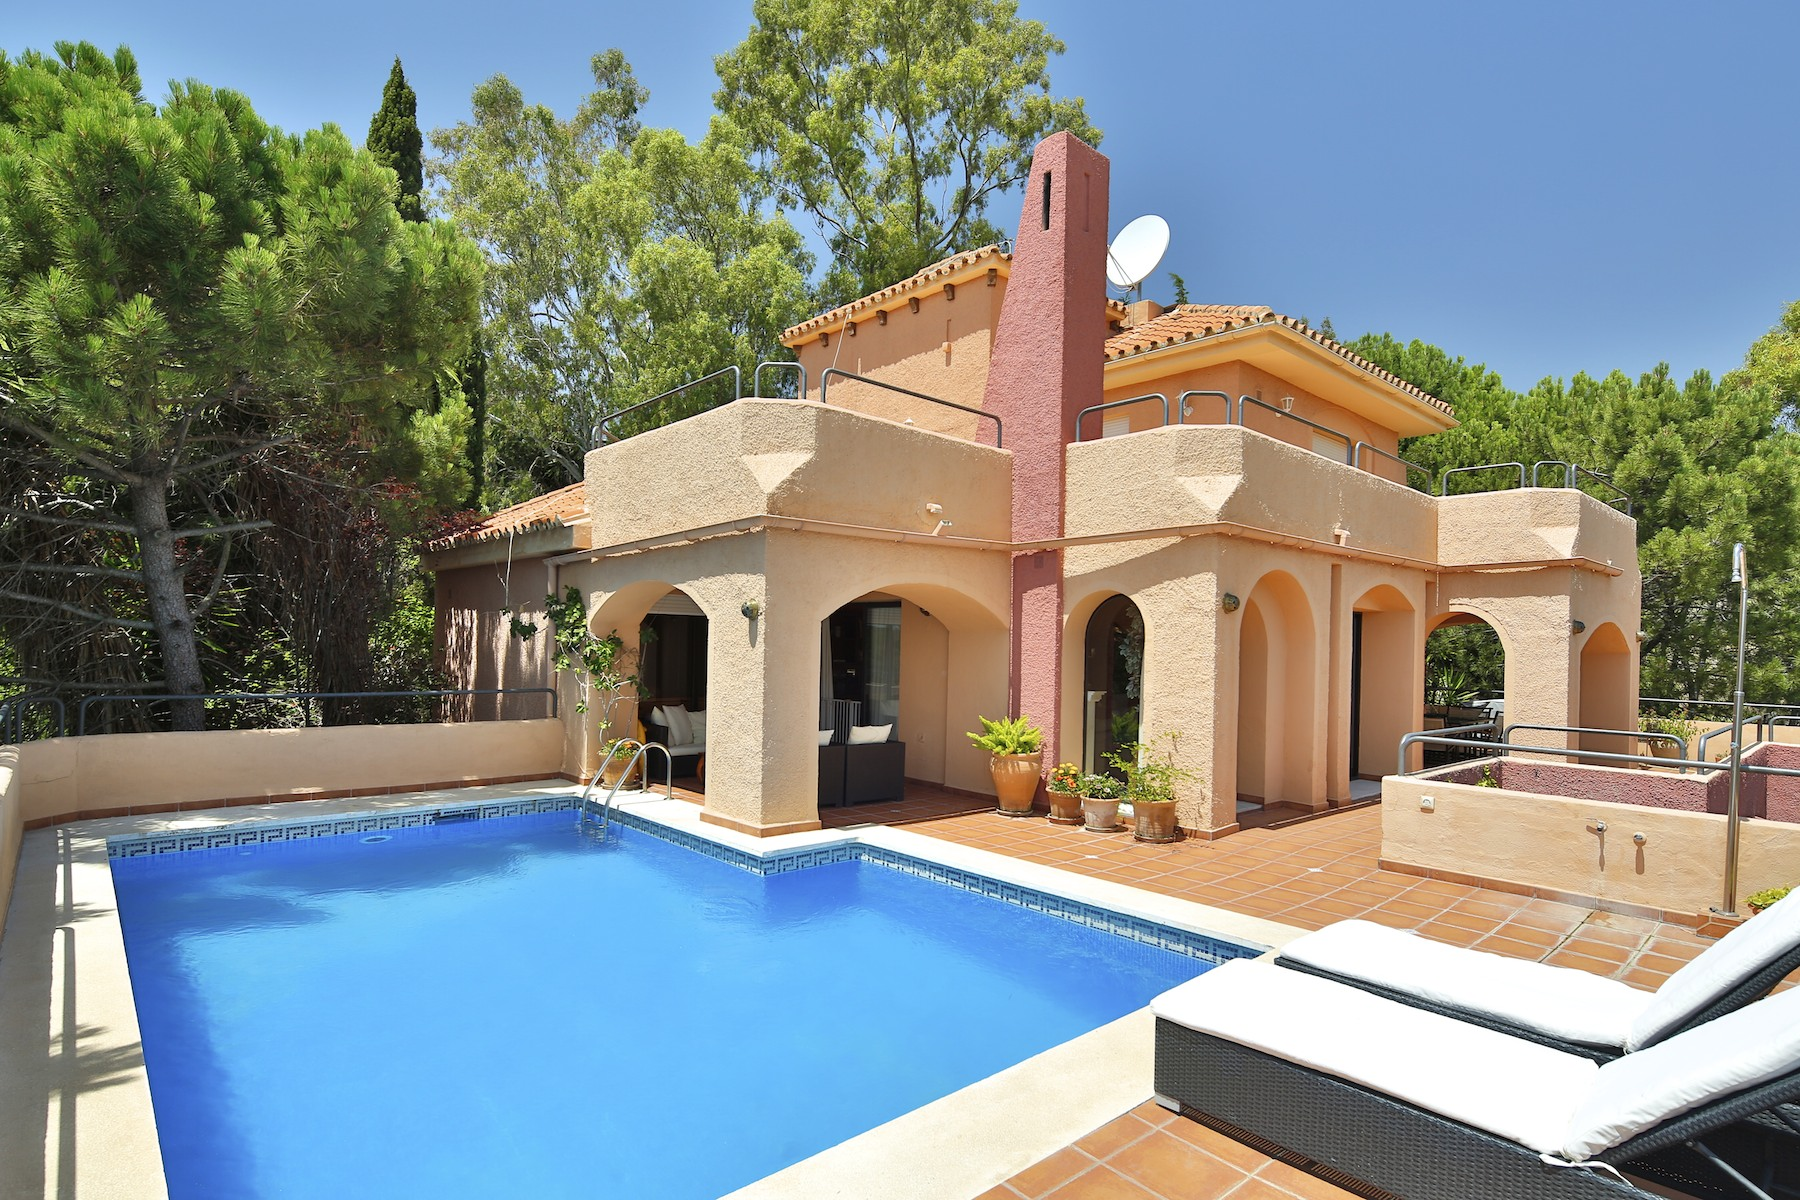 Moradia para Venda às Charming villa in a gated community of the golf valley Nueva Andalucia, Other Andalucia, Andaluzia, 29660 Espanha